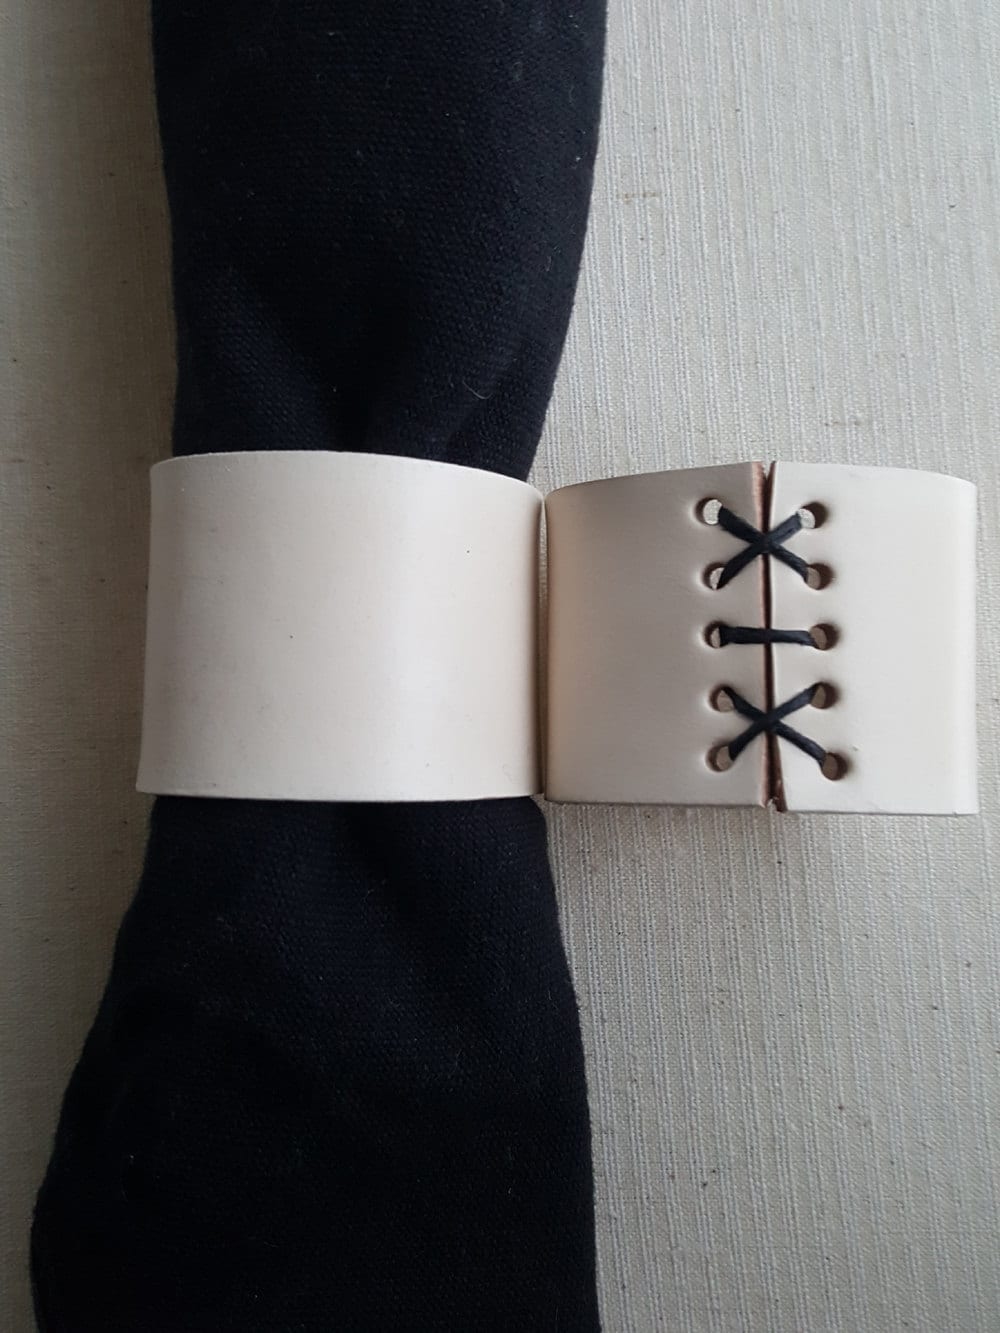 Black White Leather Napkin Rings Hand Stitched Lace Intimate Dining Dining Accessories Wedding Table Table Decor